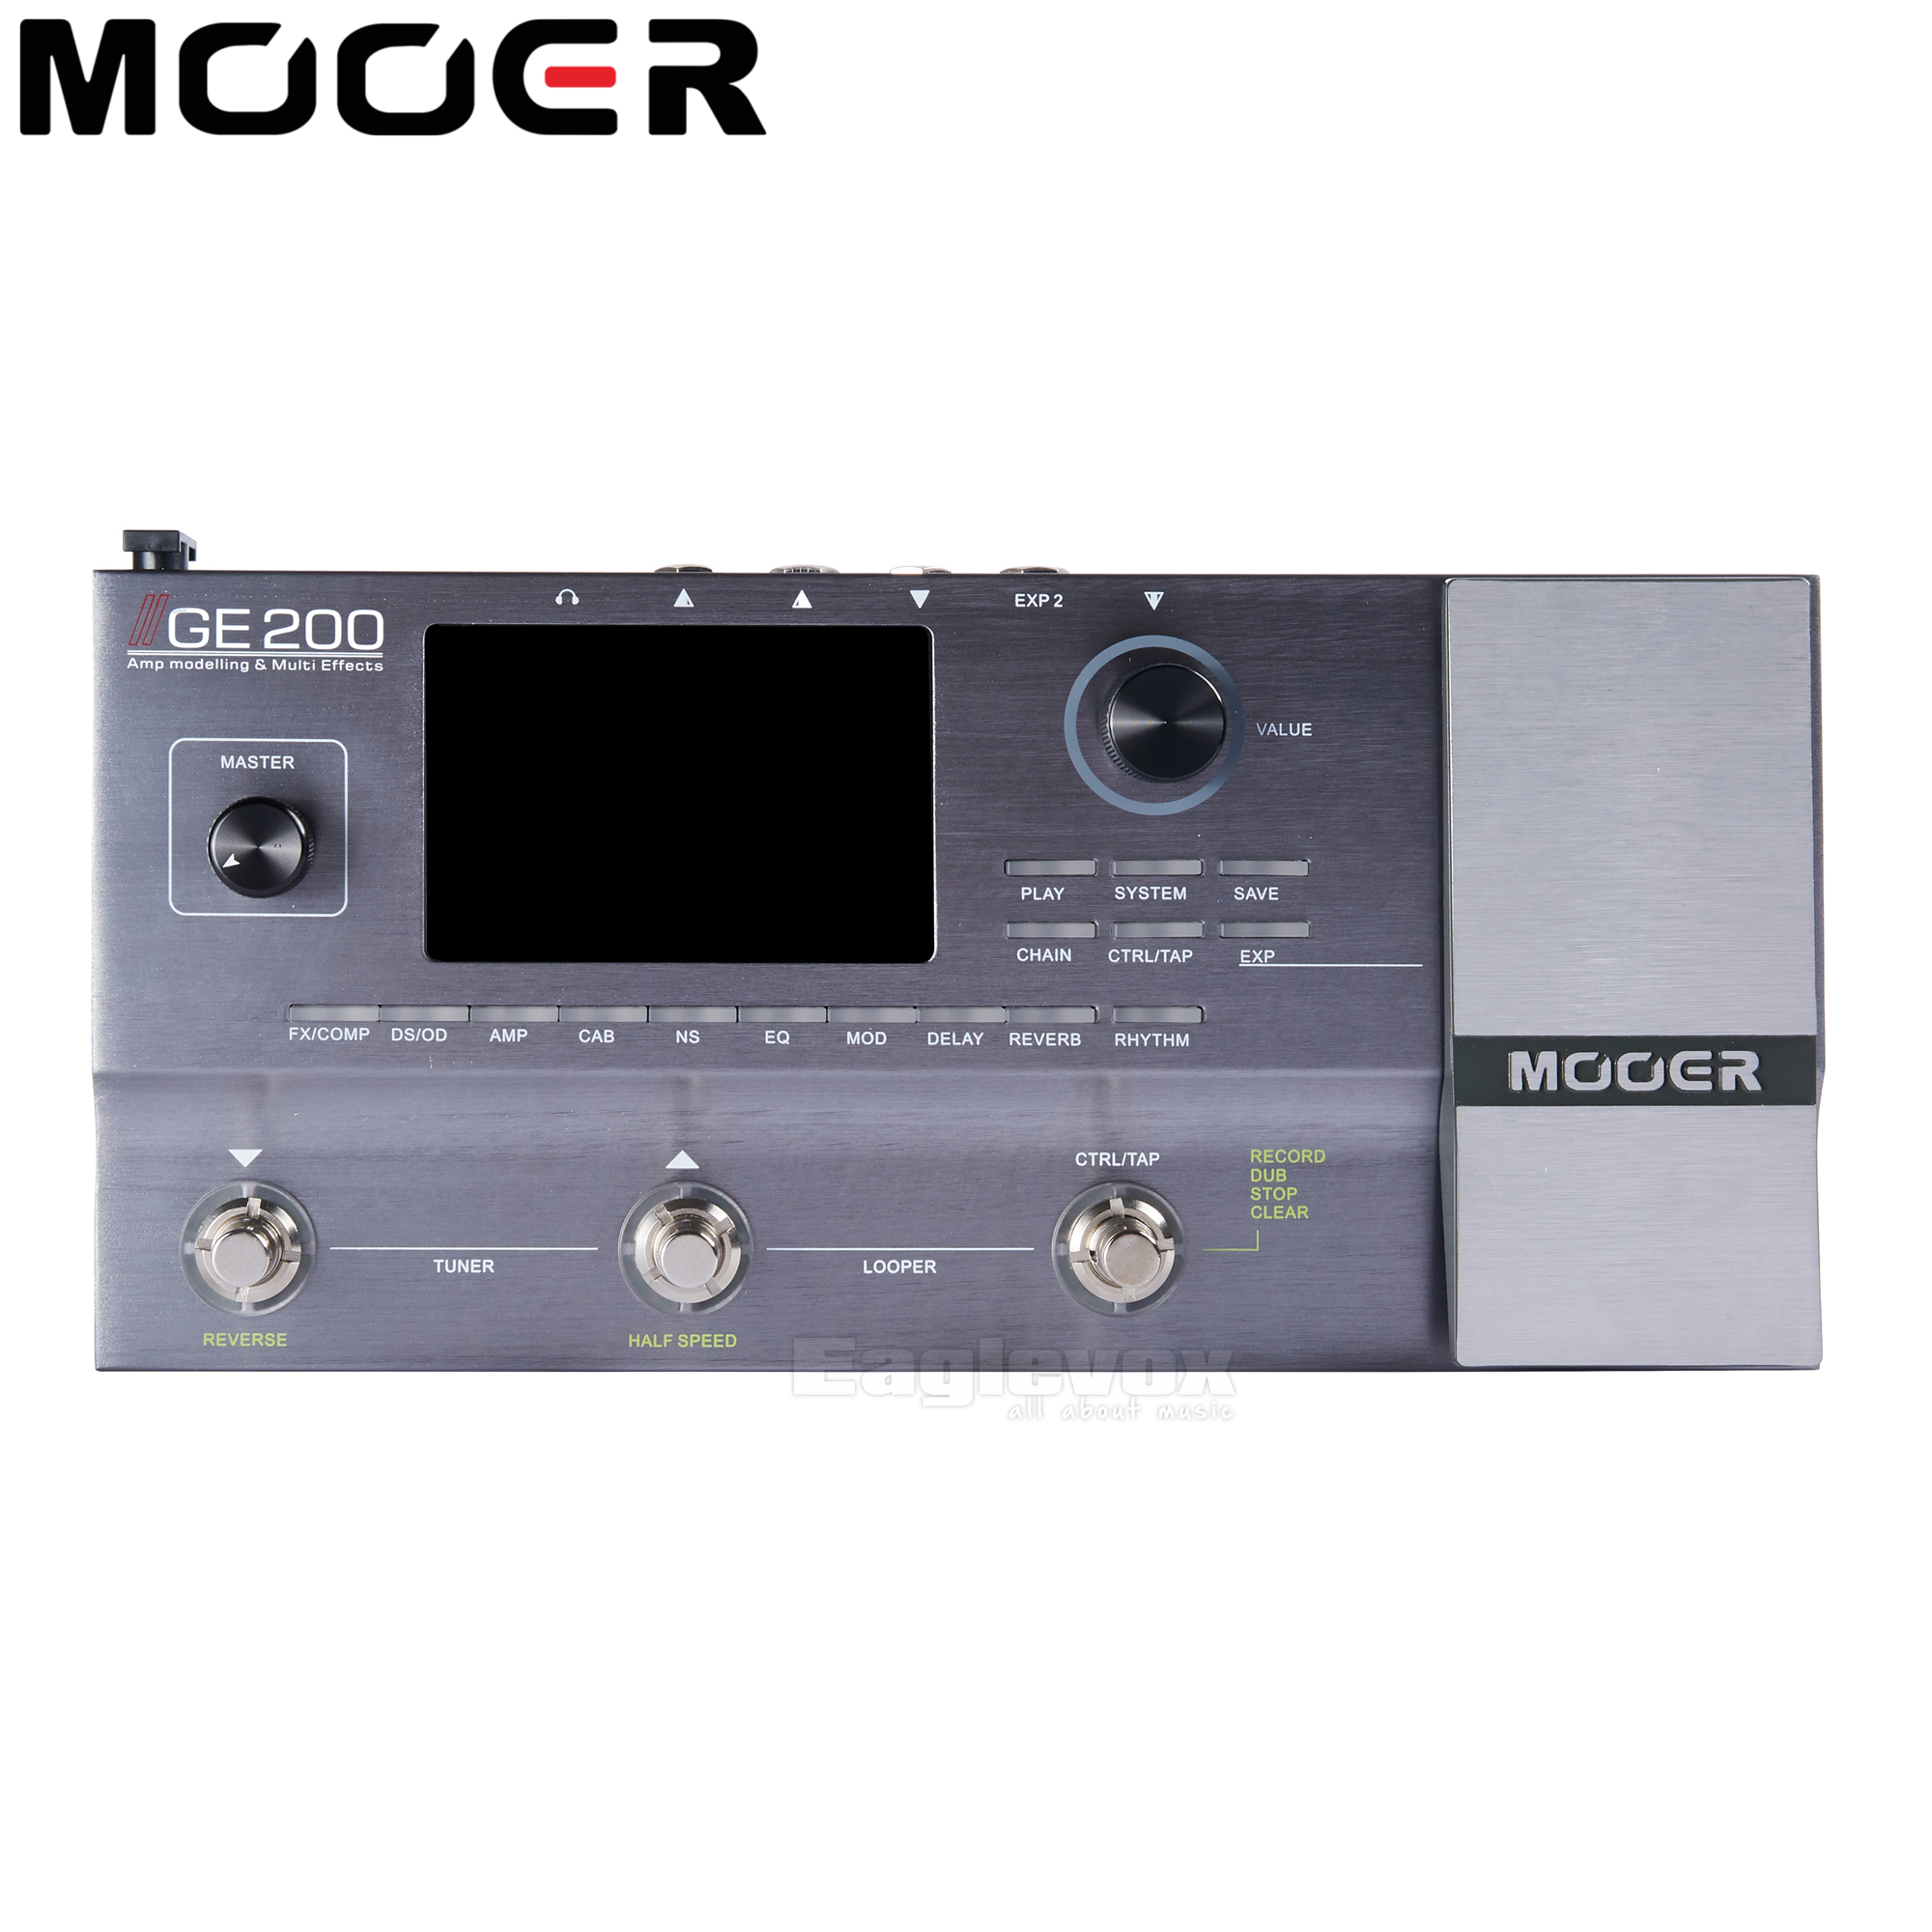 Mooer GE200 Multi Effects Processor Electric Guitar Effect Pedal Multi Effects  52 Second Looper 55 AMP Models Mooer GE200 mooer ensemble queen bass chorus effect pedal mini guitar effects true bypass with free connector and footswitch topper